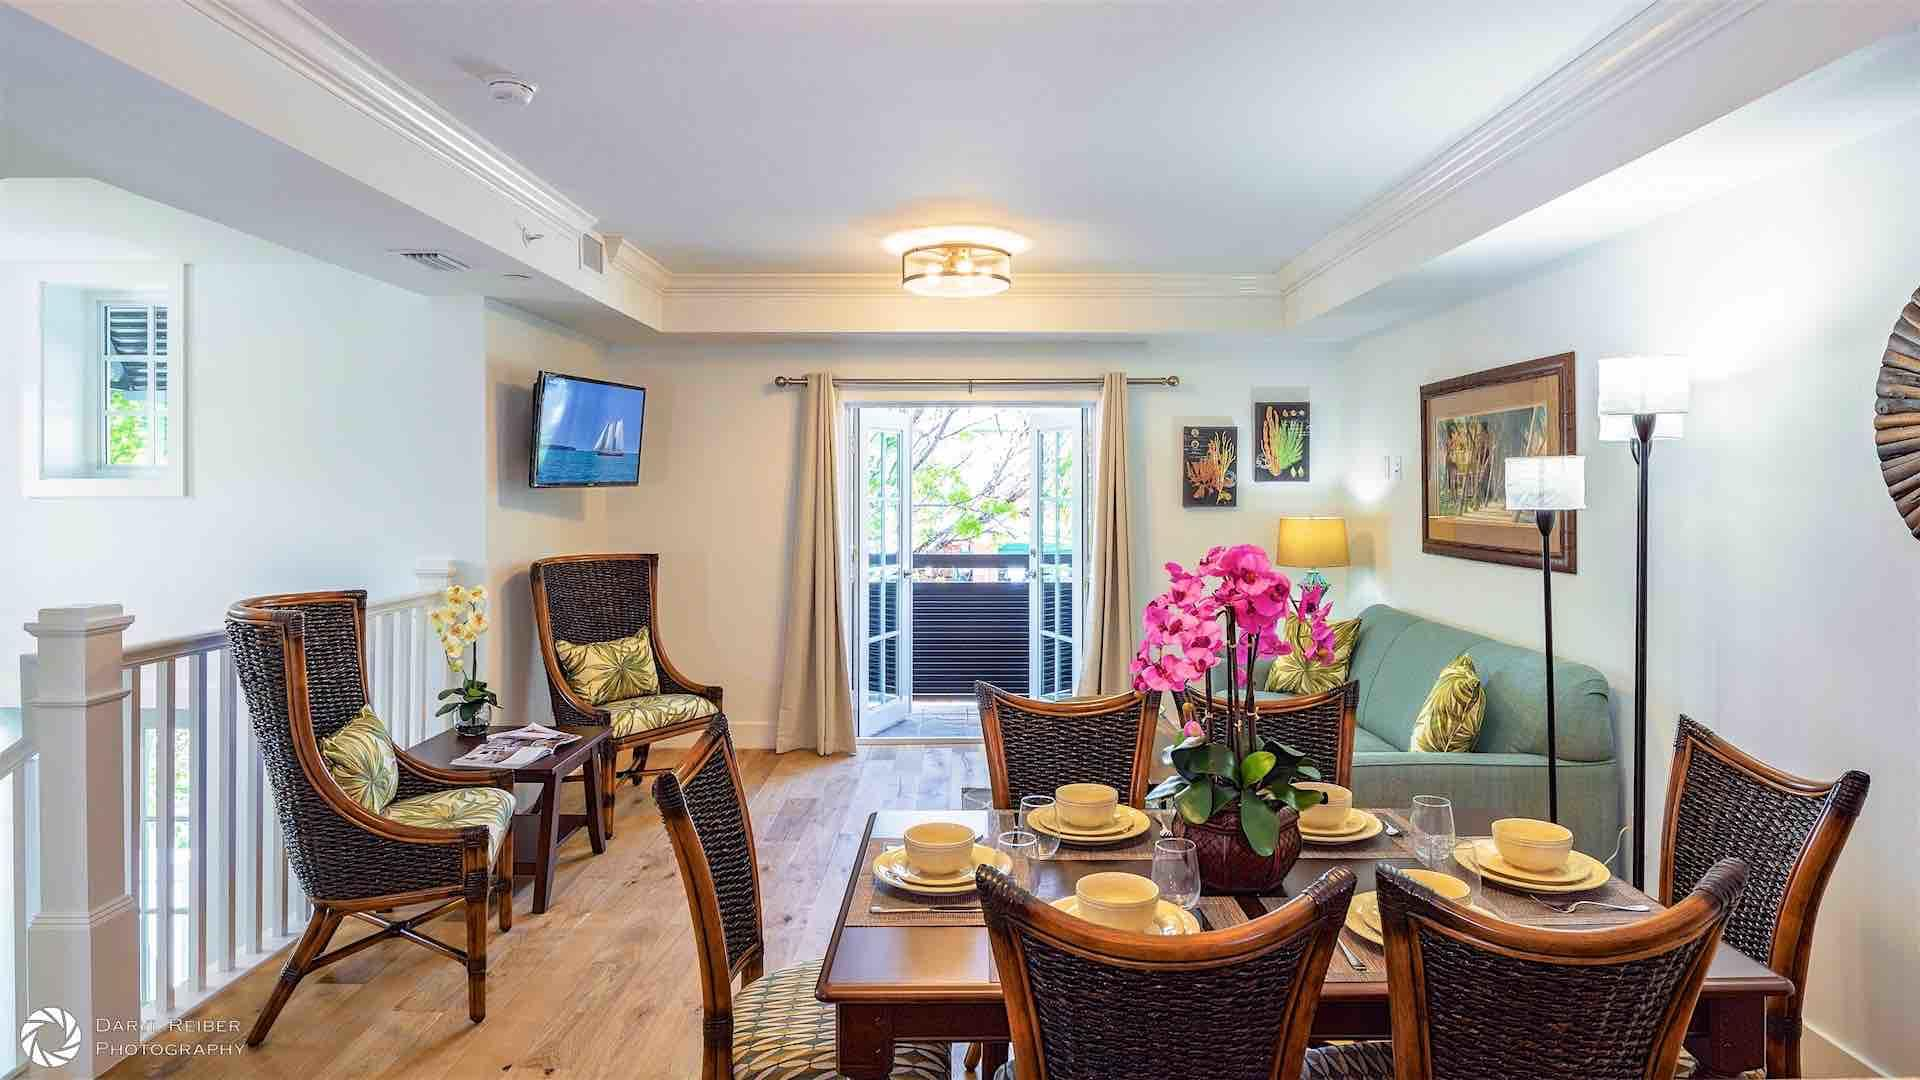 On the second floor, you'll find the sitting room, dining area, and another balcony...